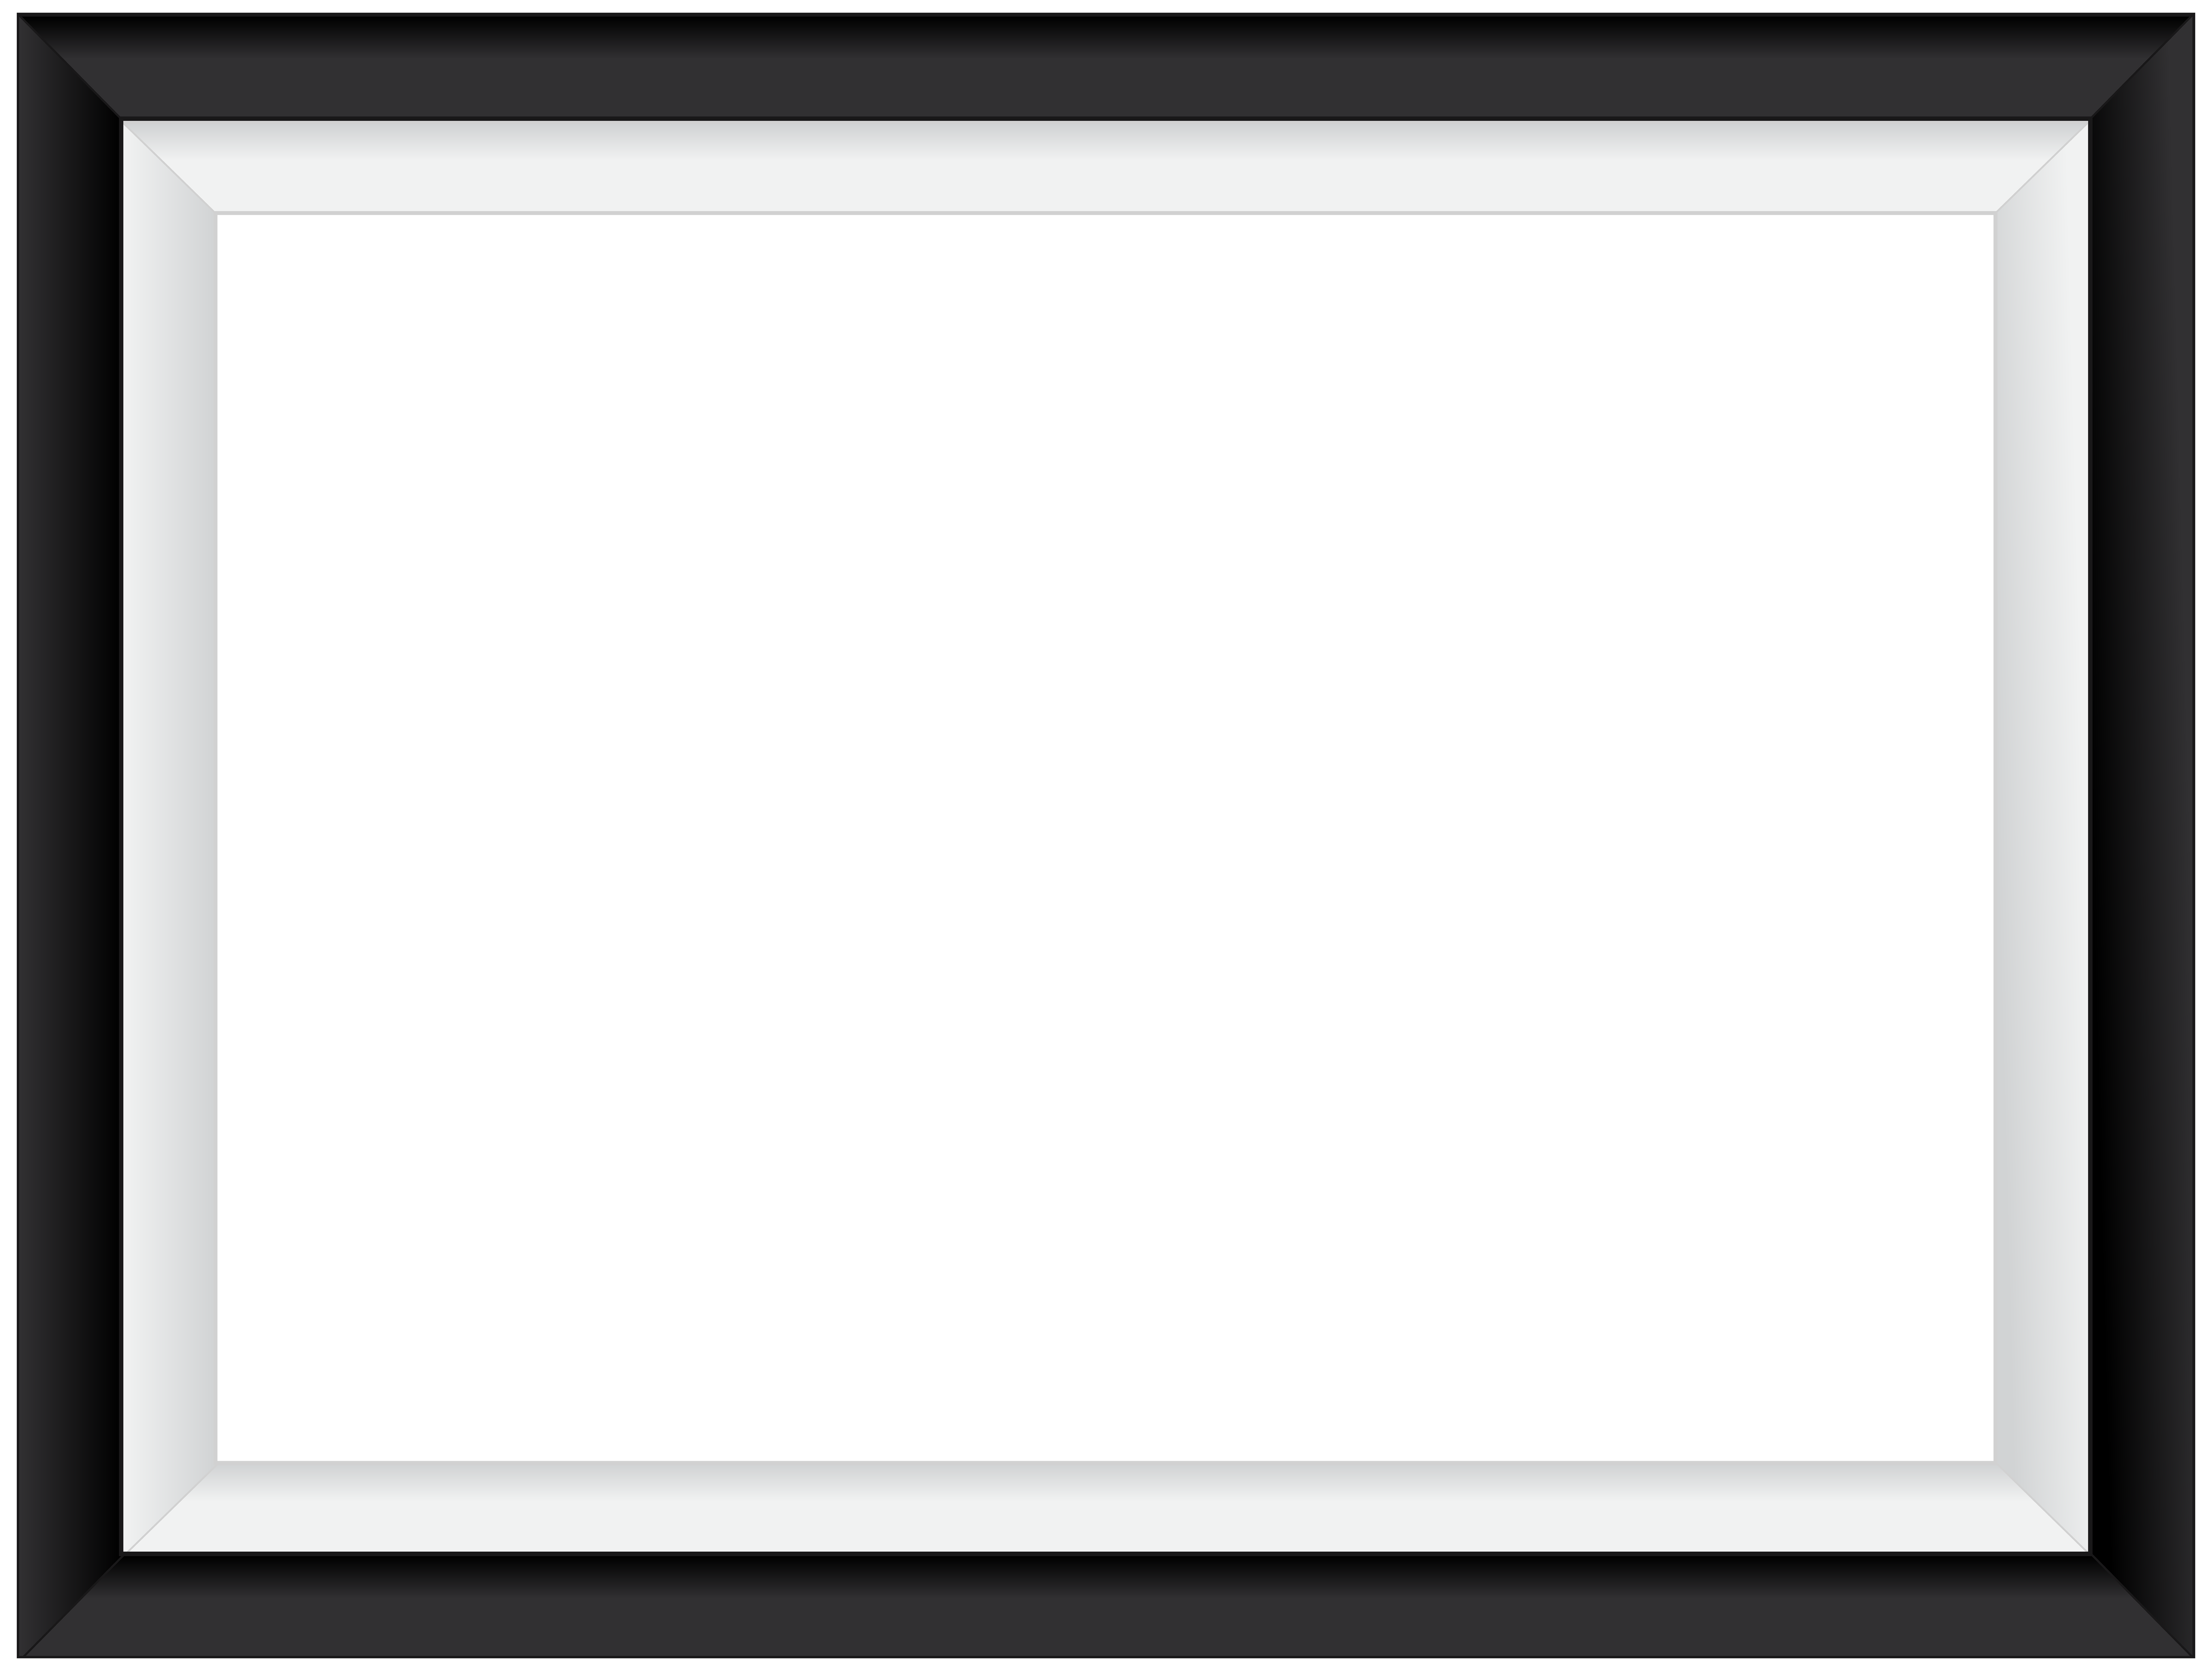 Black frame png. Square view full size